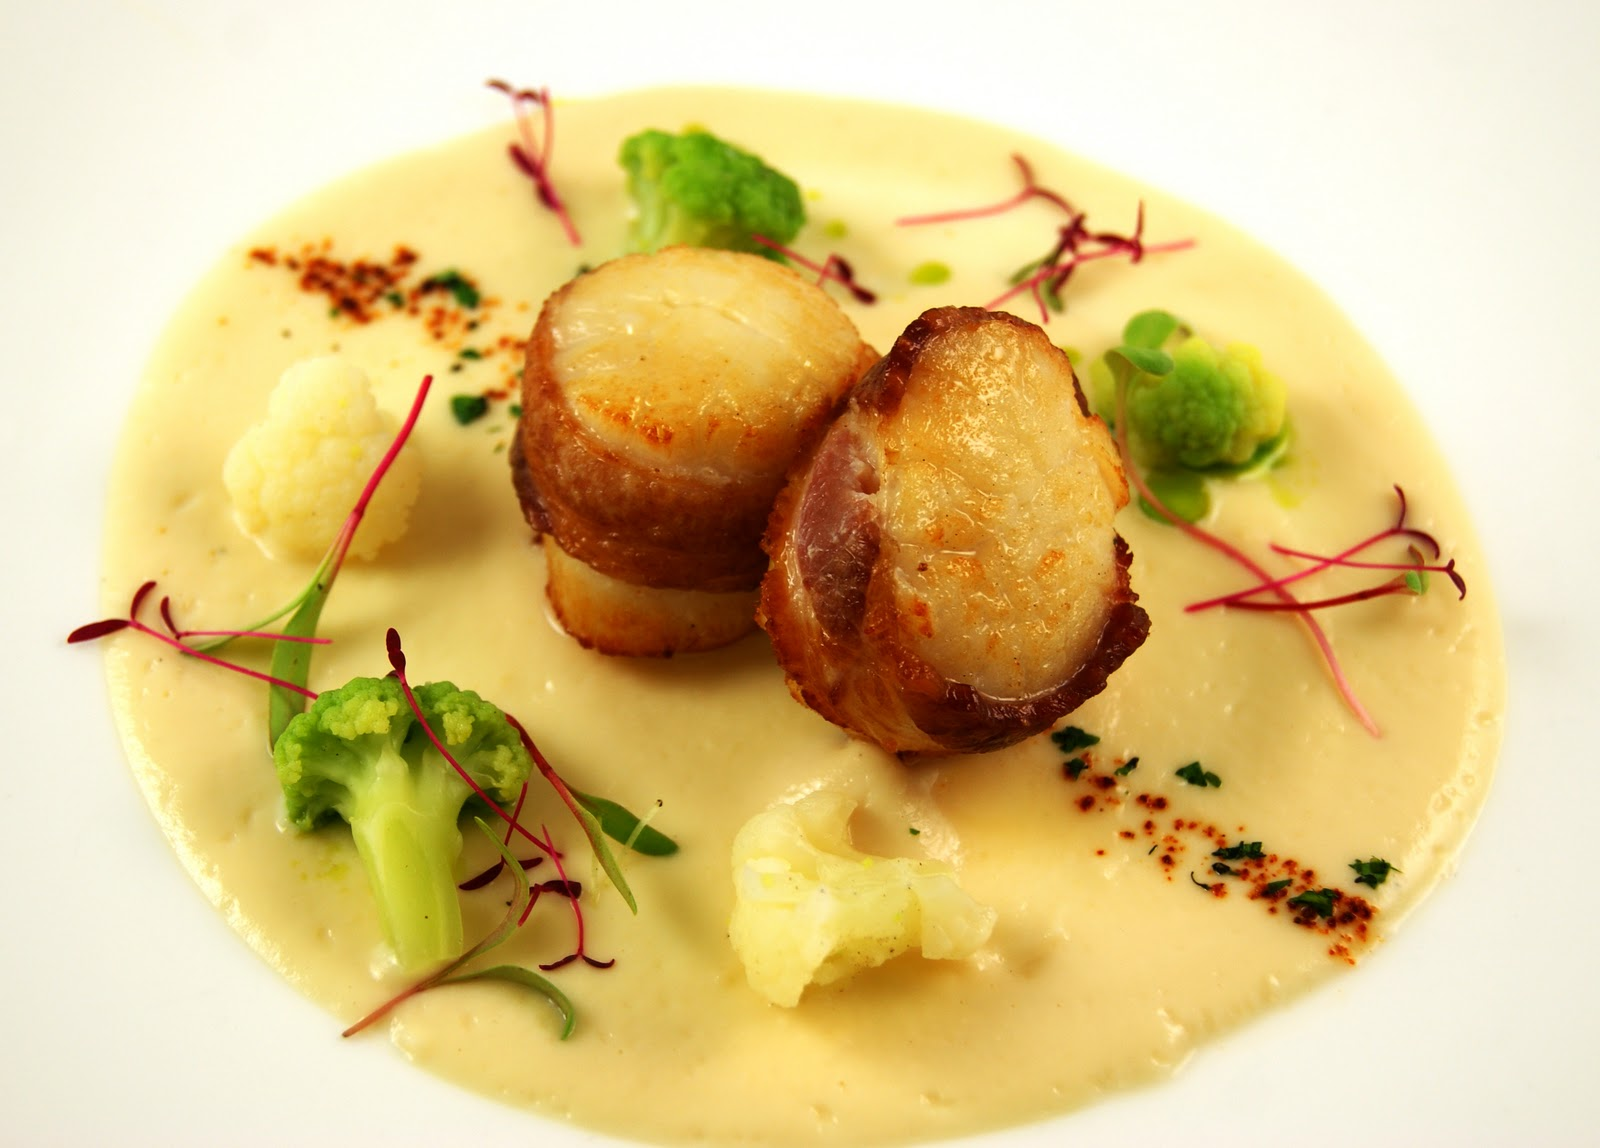 ... Heat: Bacon Wrapped Scallops with Cauliflower Puree, Chipotle Powder